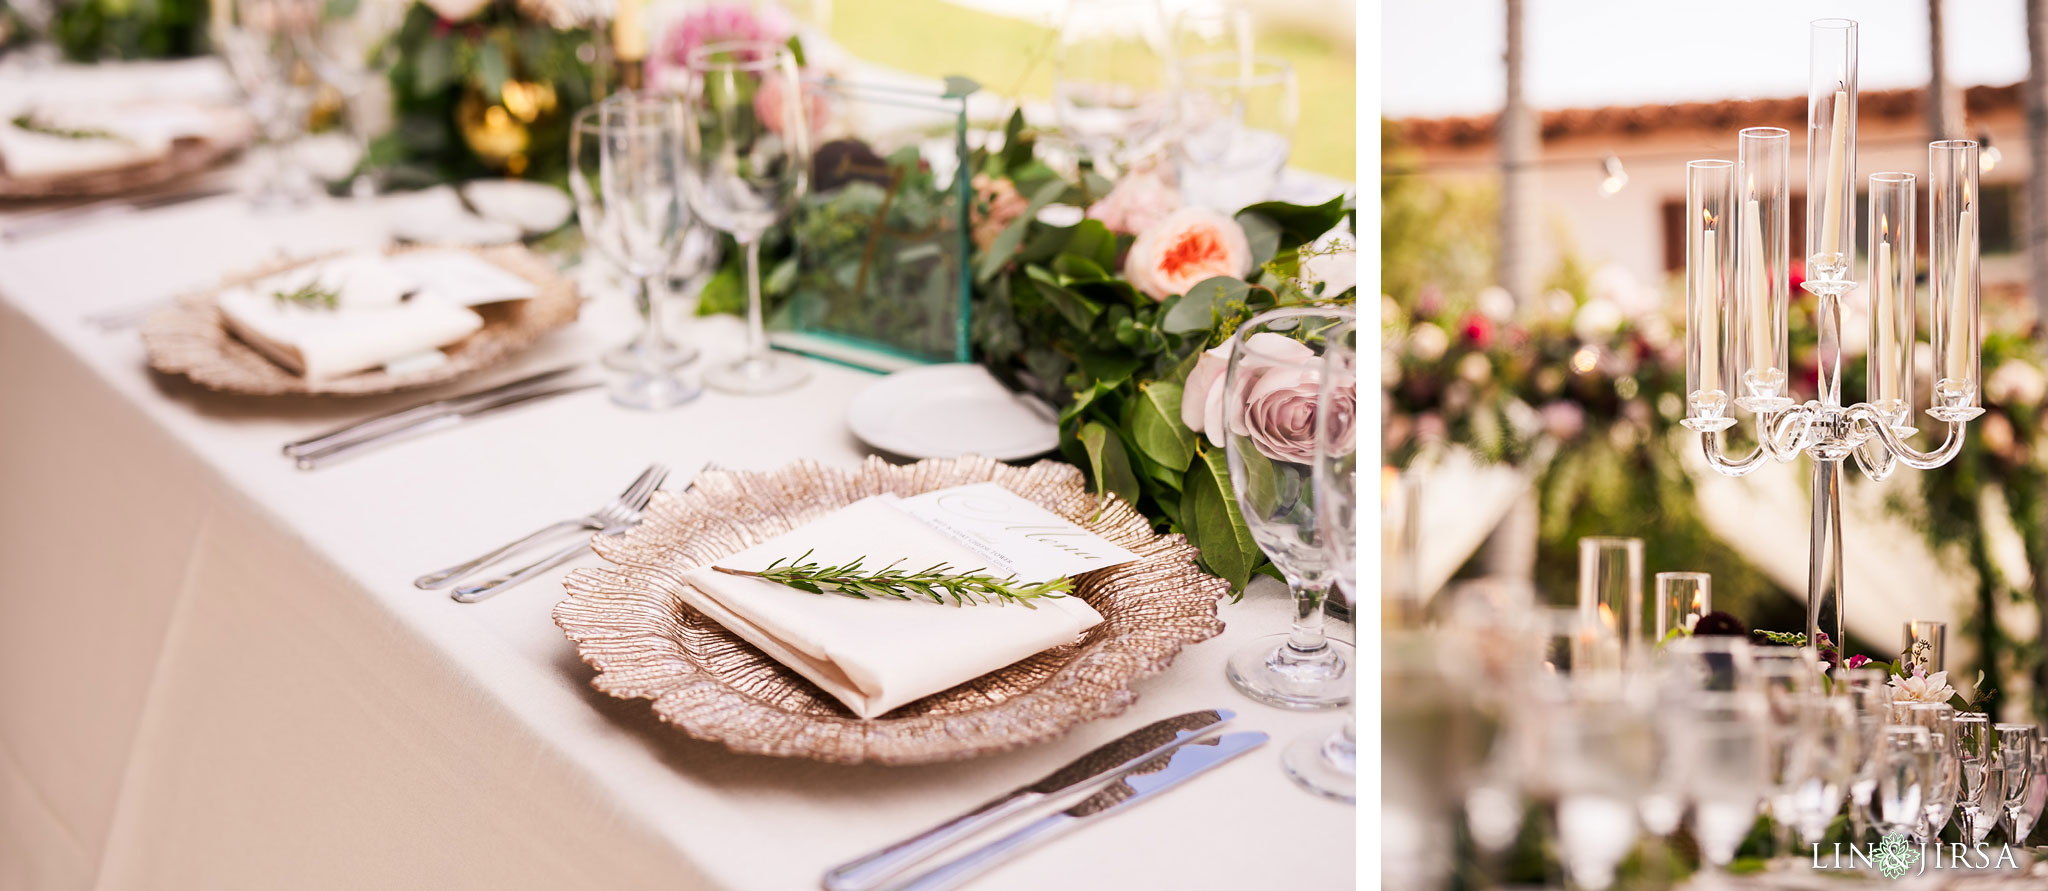 023 casa romantica san clemente wedding reception photography